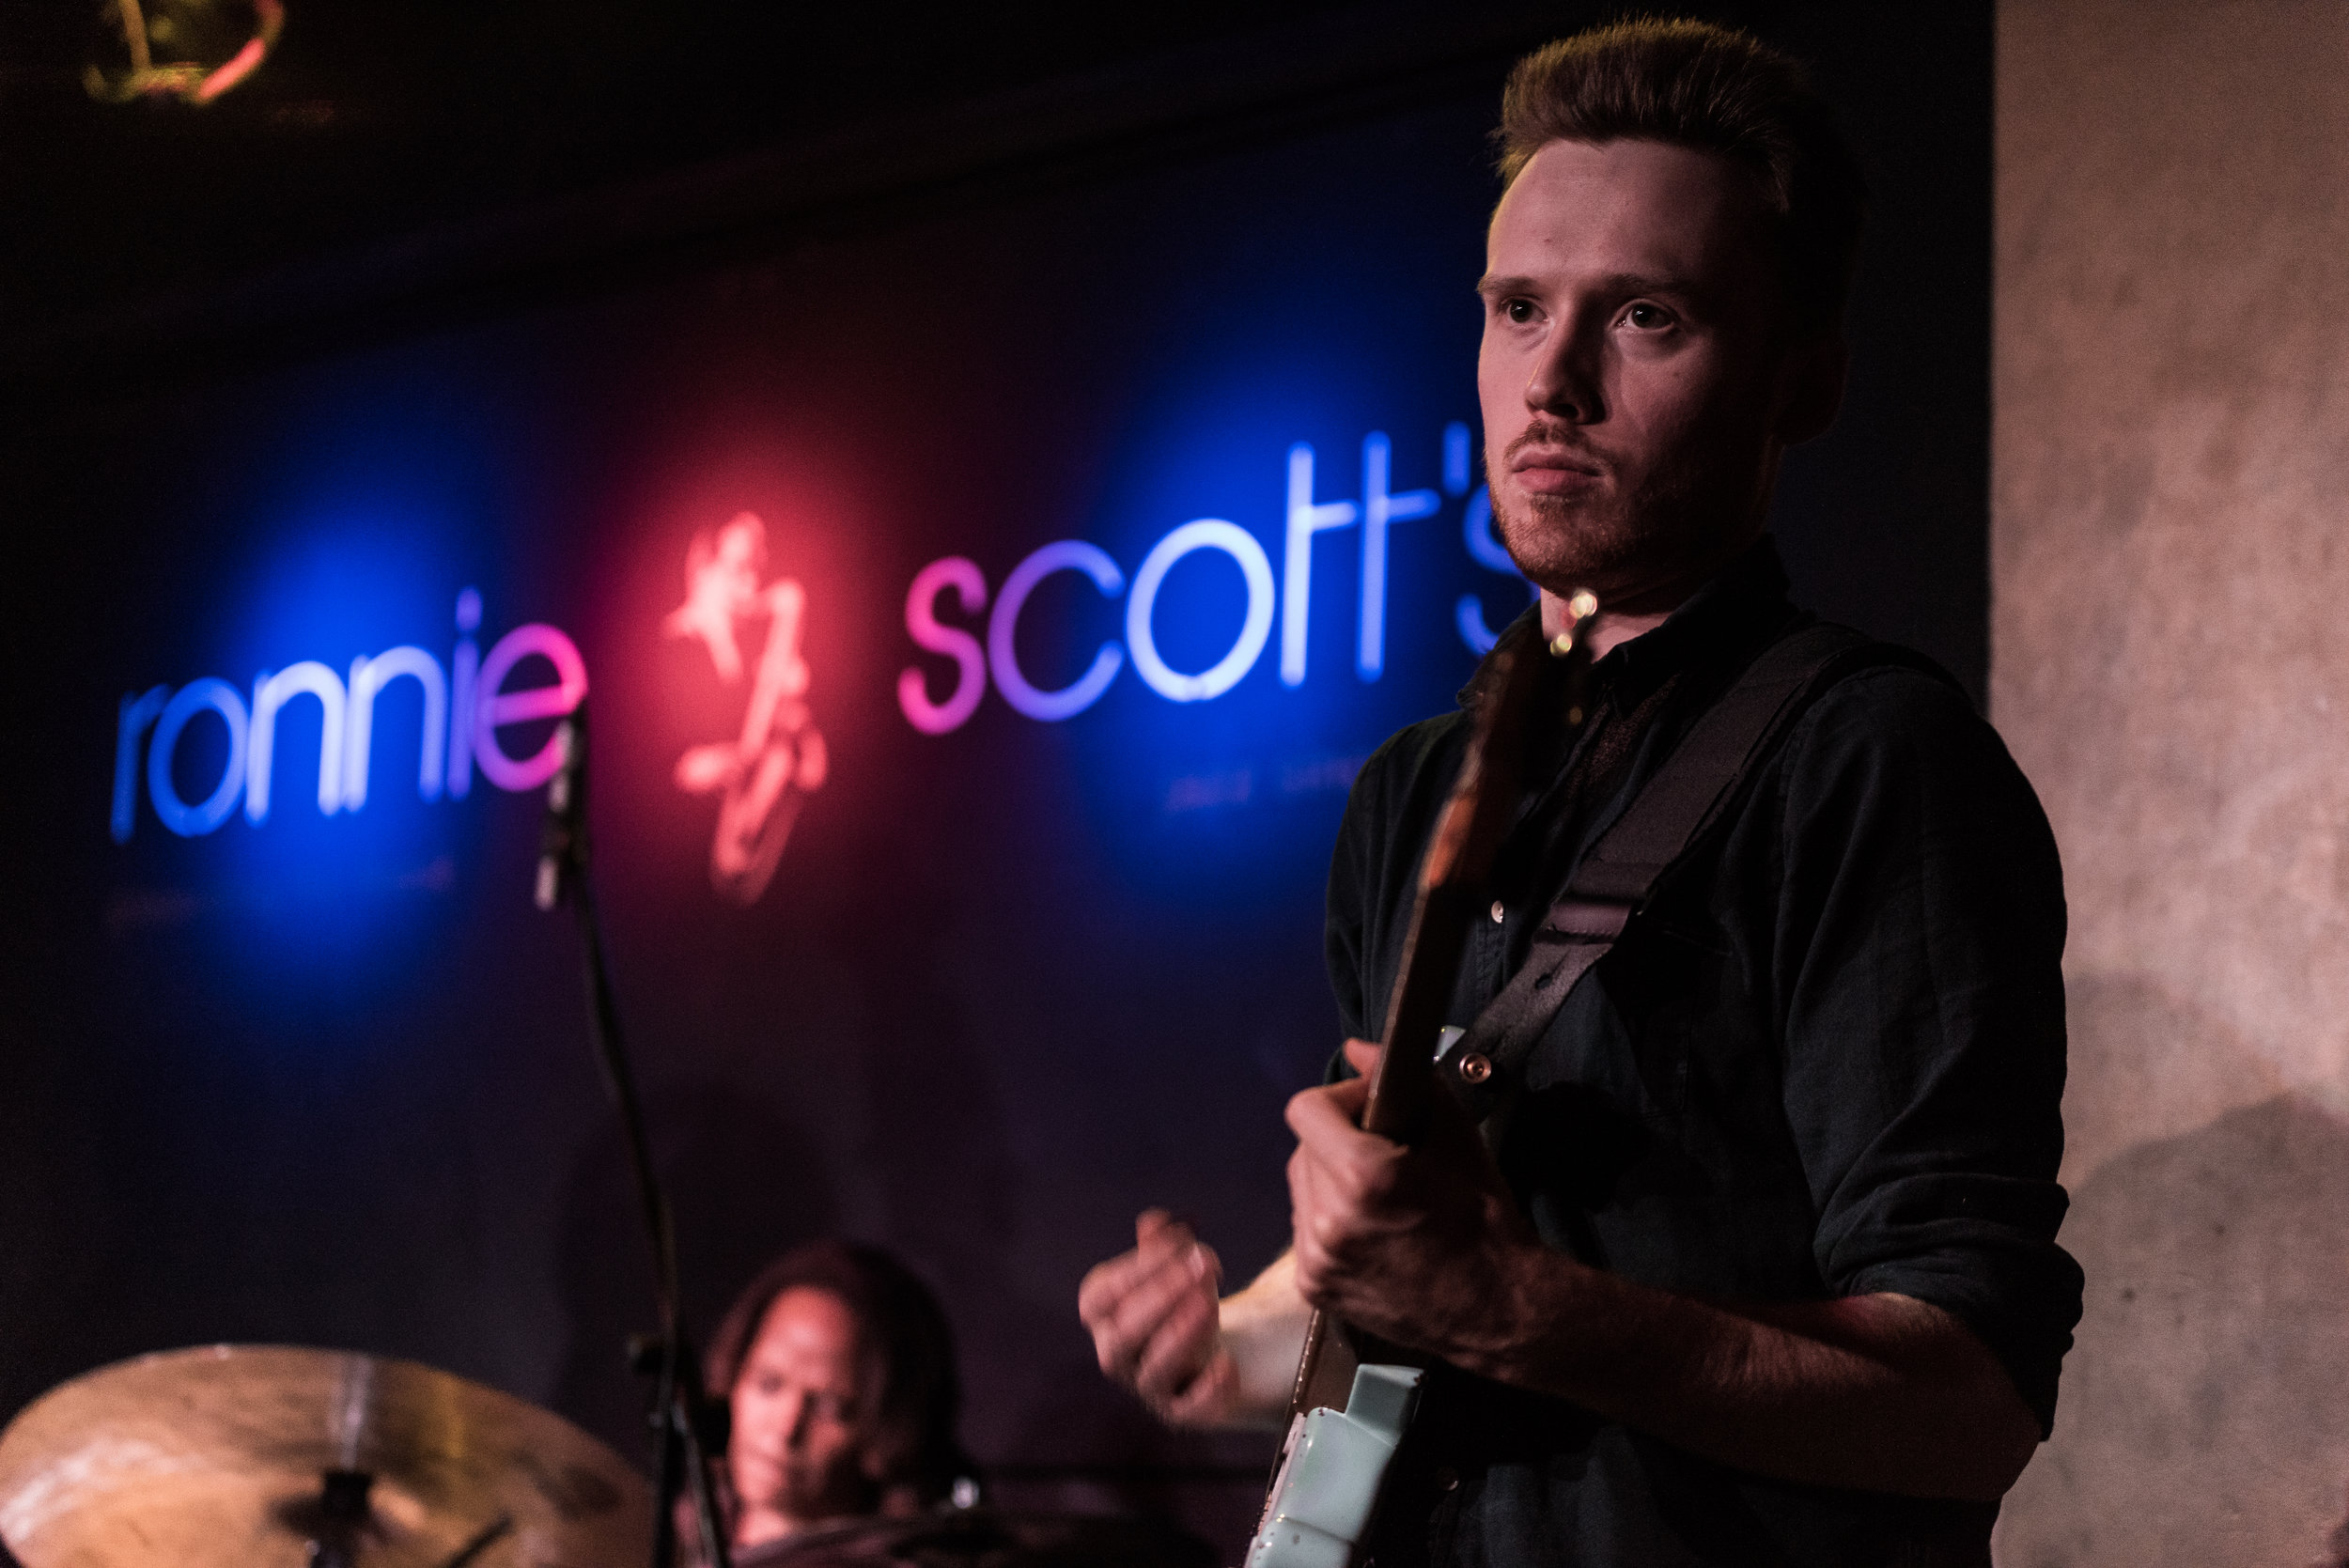 Ben Eunson performing with Terri Lyne Carrington at Ronnie Scotts, London 2015  (Photo by Benjamin Amure)